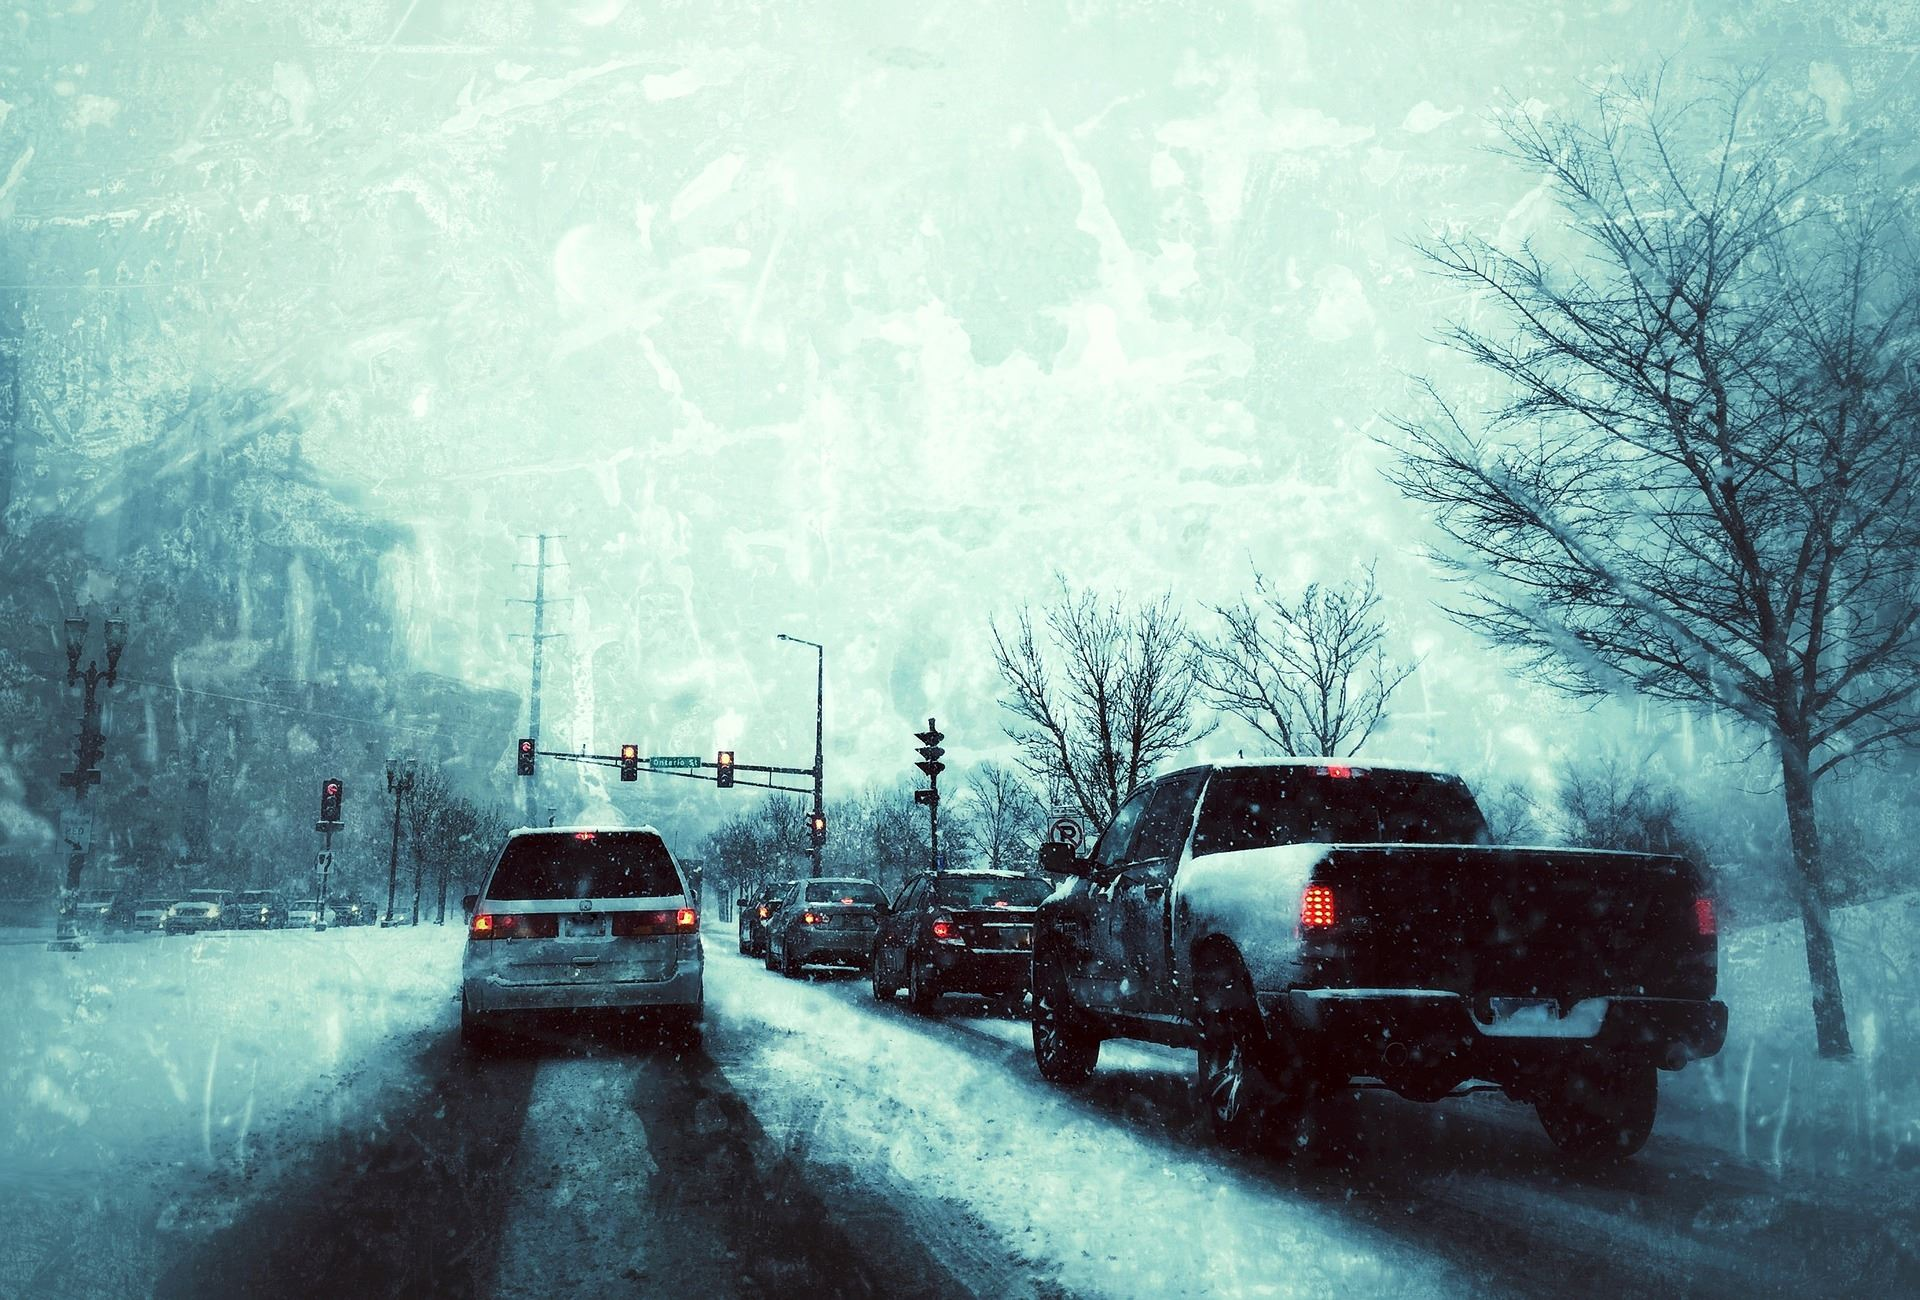 View of Winter Traffic through a Windshield